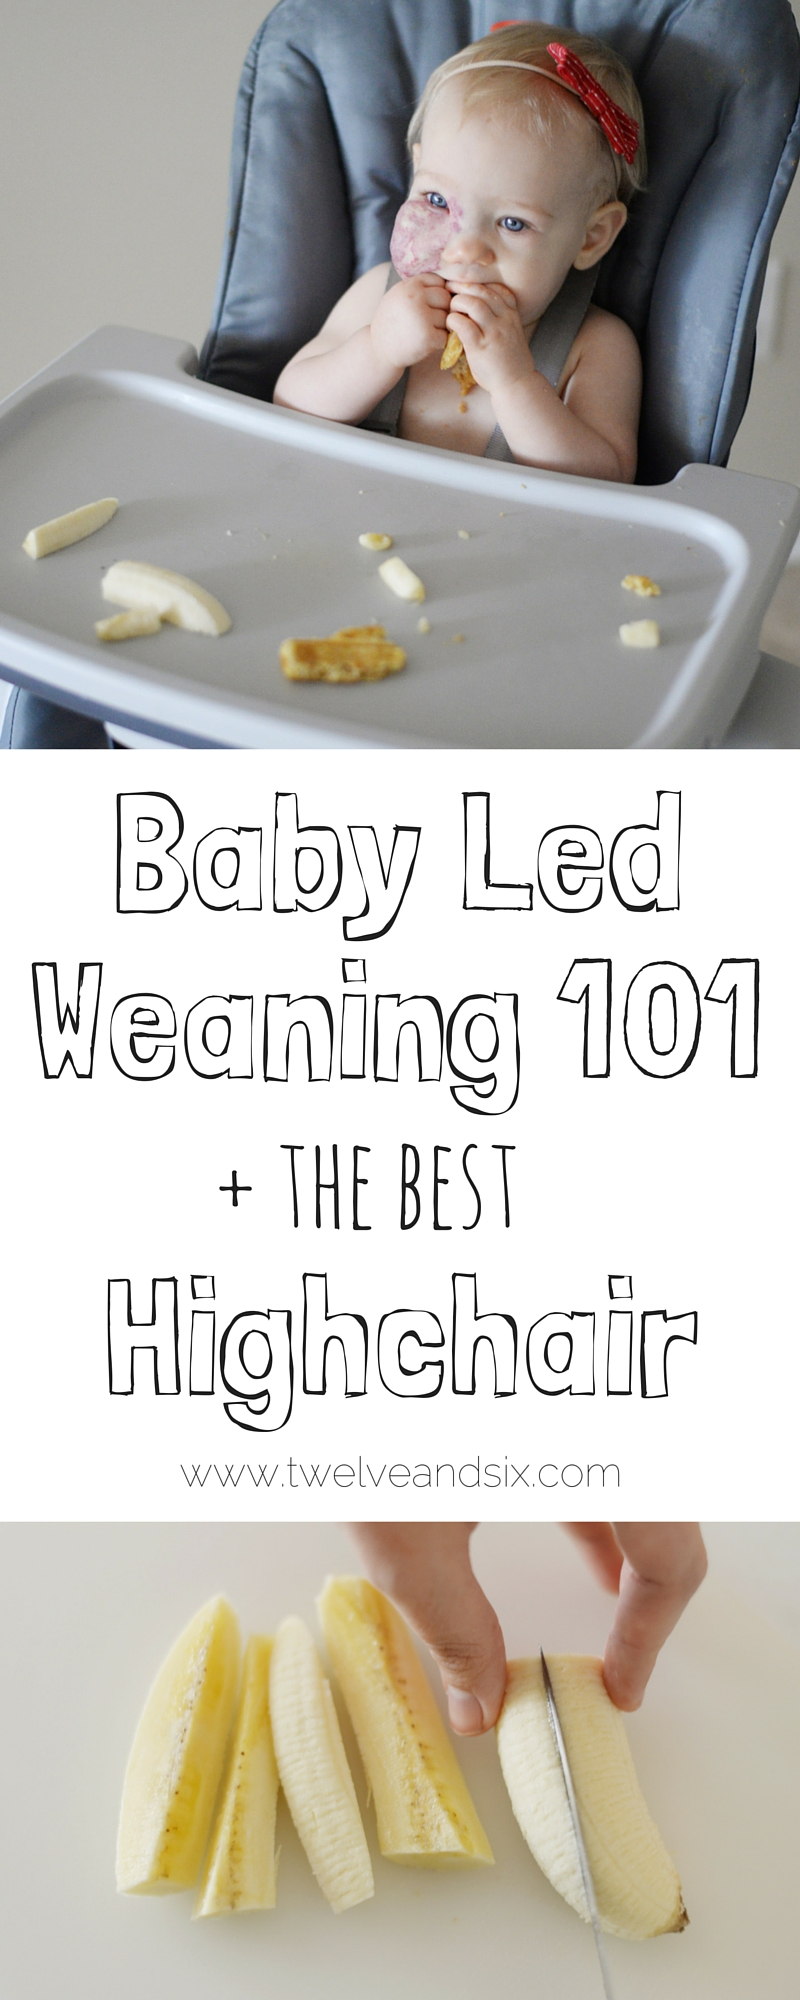 101 Best Images About Arthur Edward Waite: Baby Led Weaning 101 + The Best Highchair